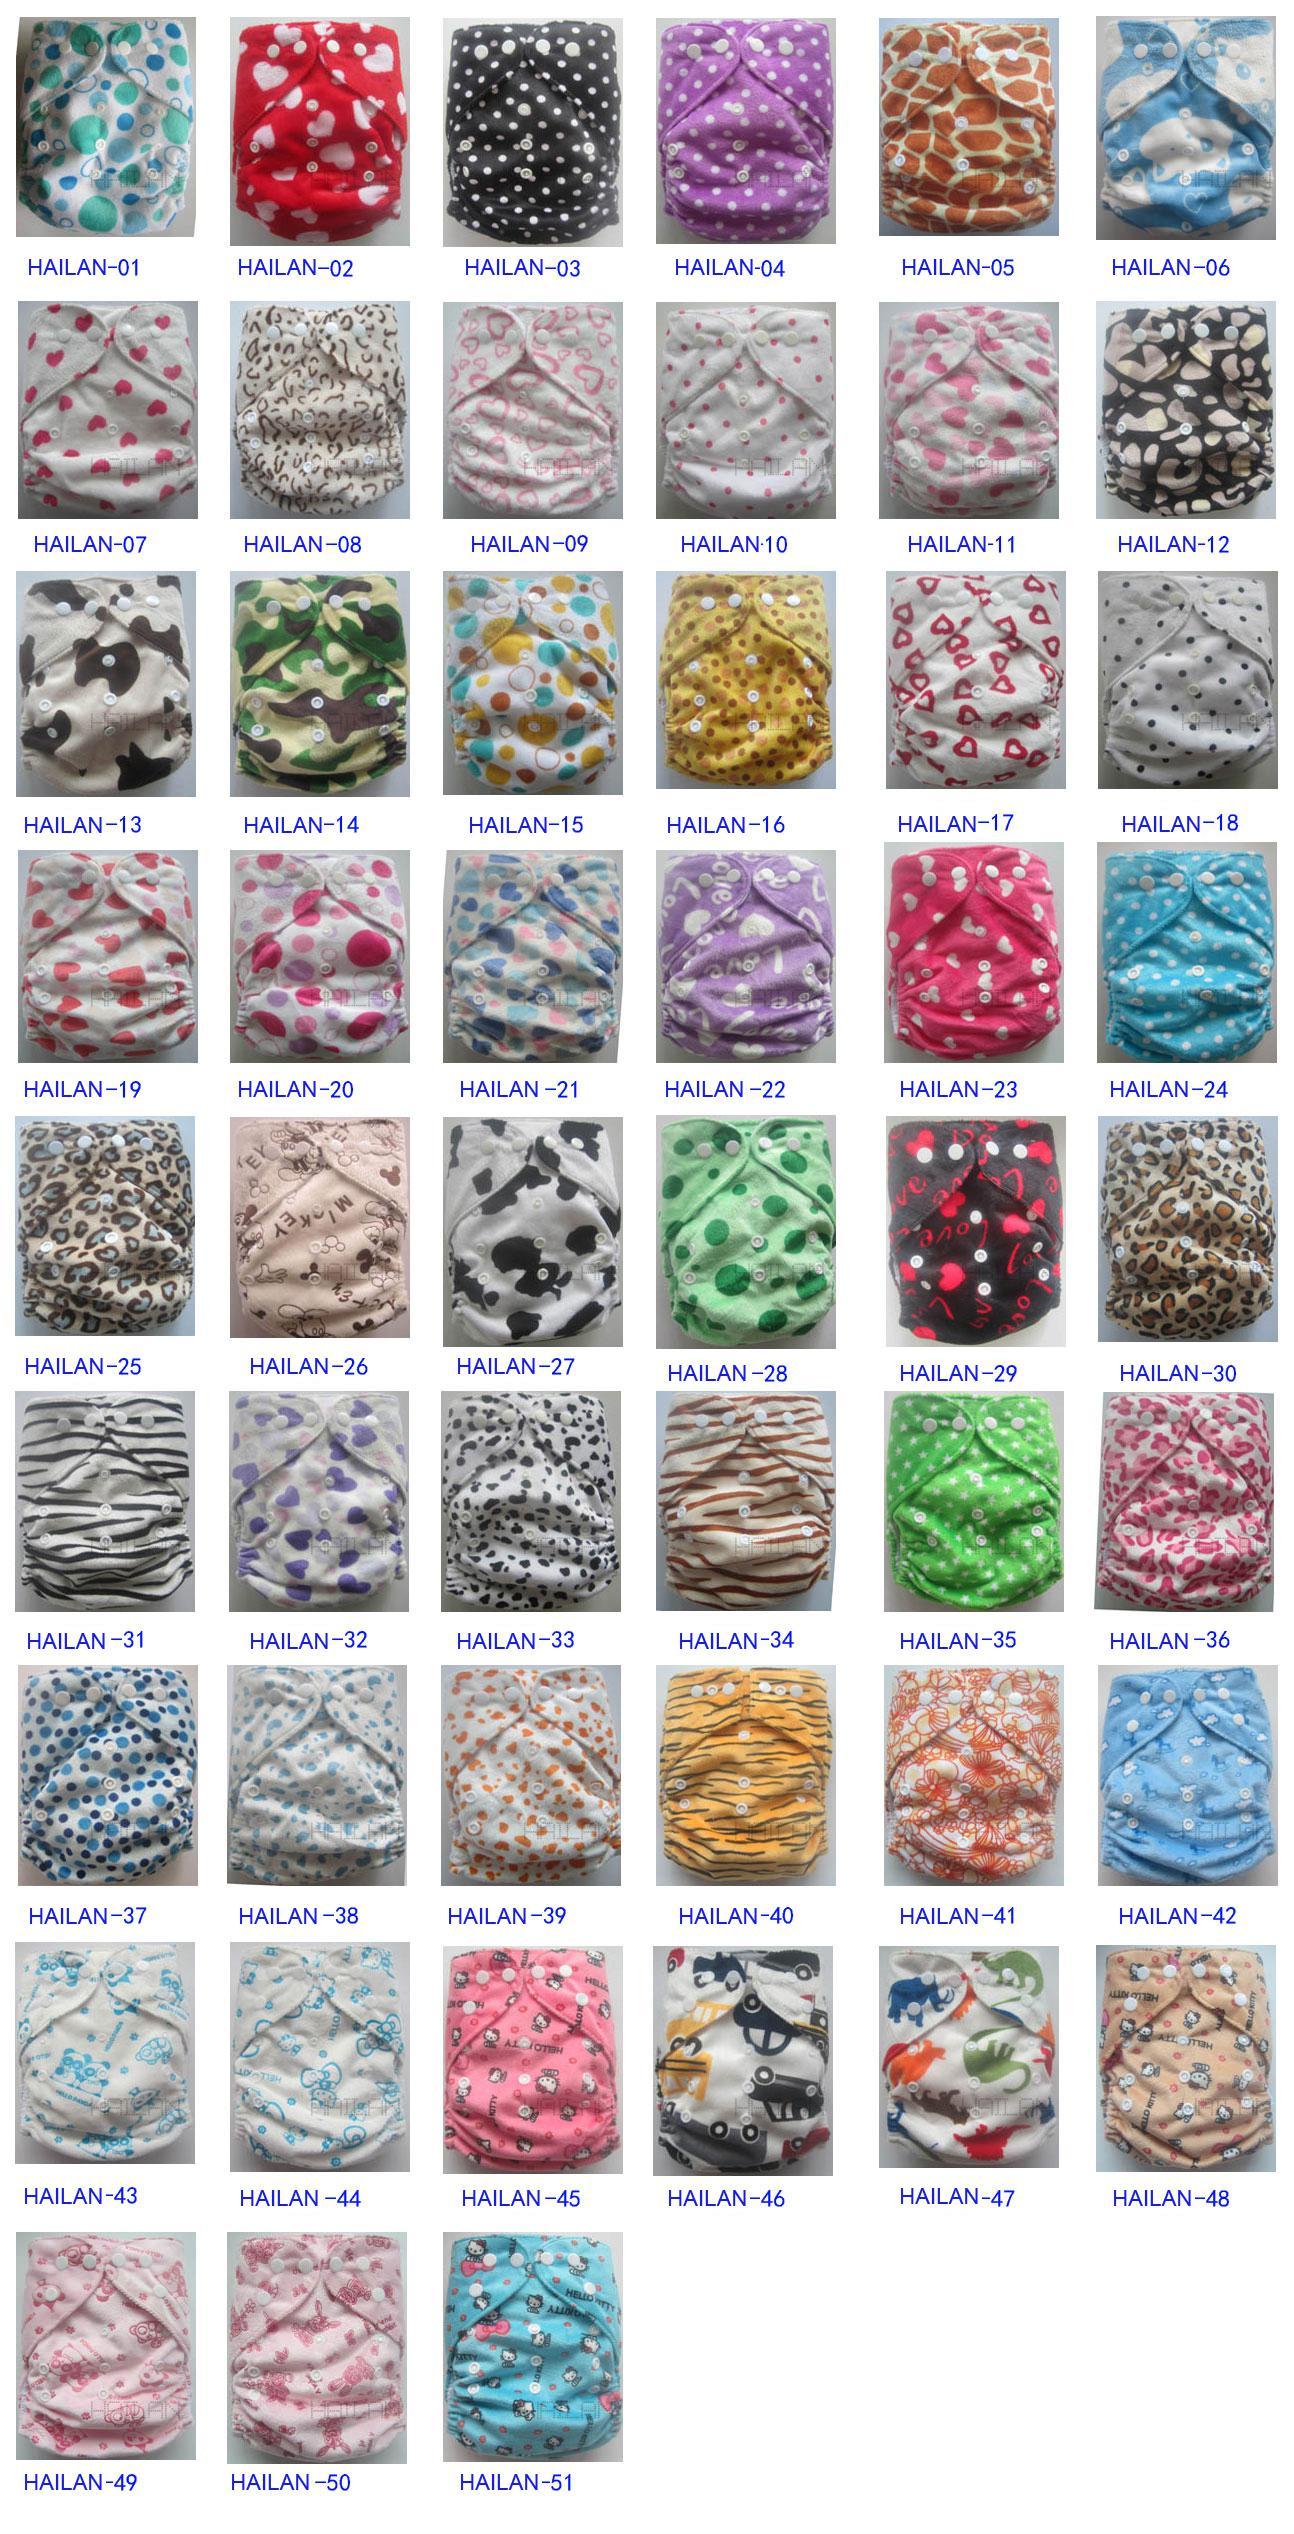 200 pcs Minky diaper with inserts One Size Cloth Diaper Waterproof Breathable PUL Reusable Diaper Covers pants for Baby